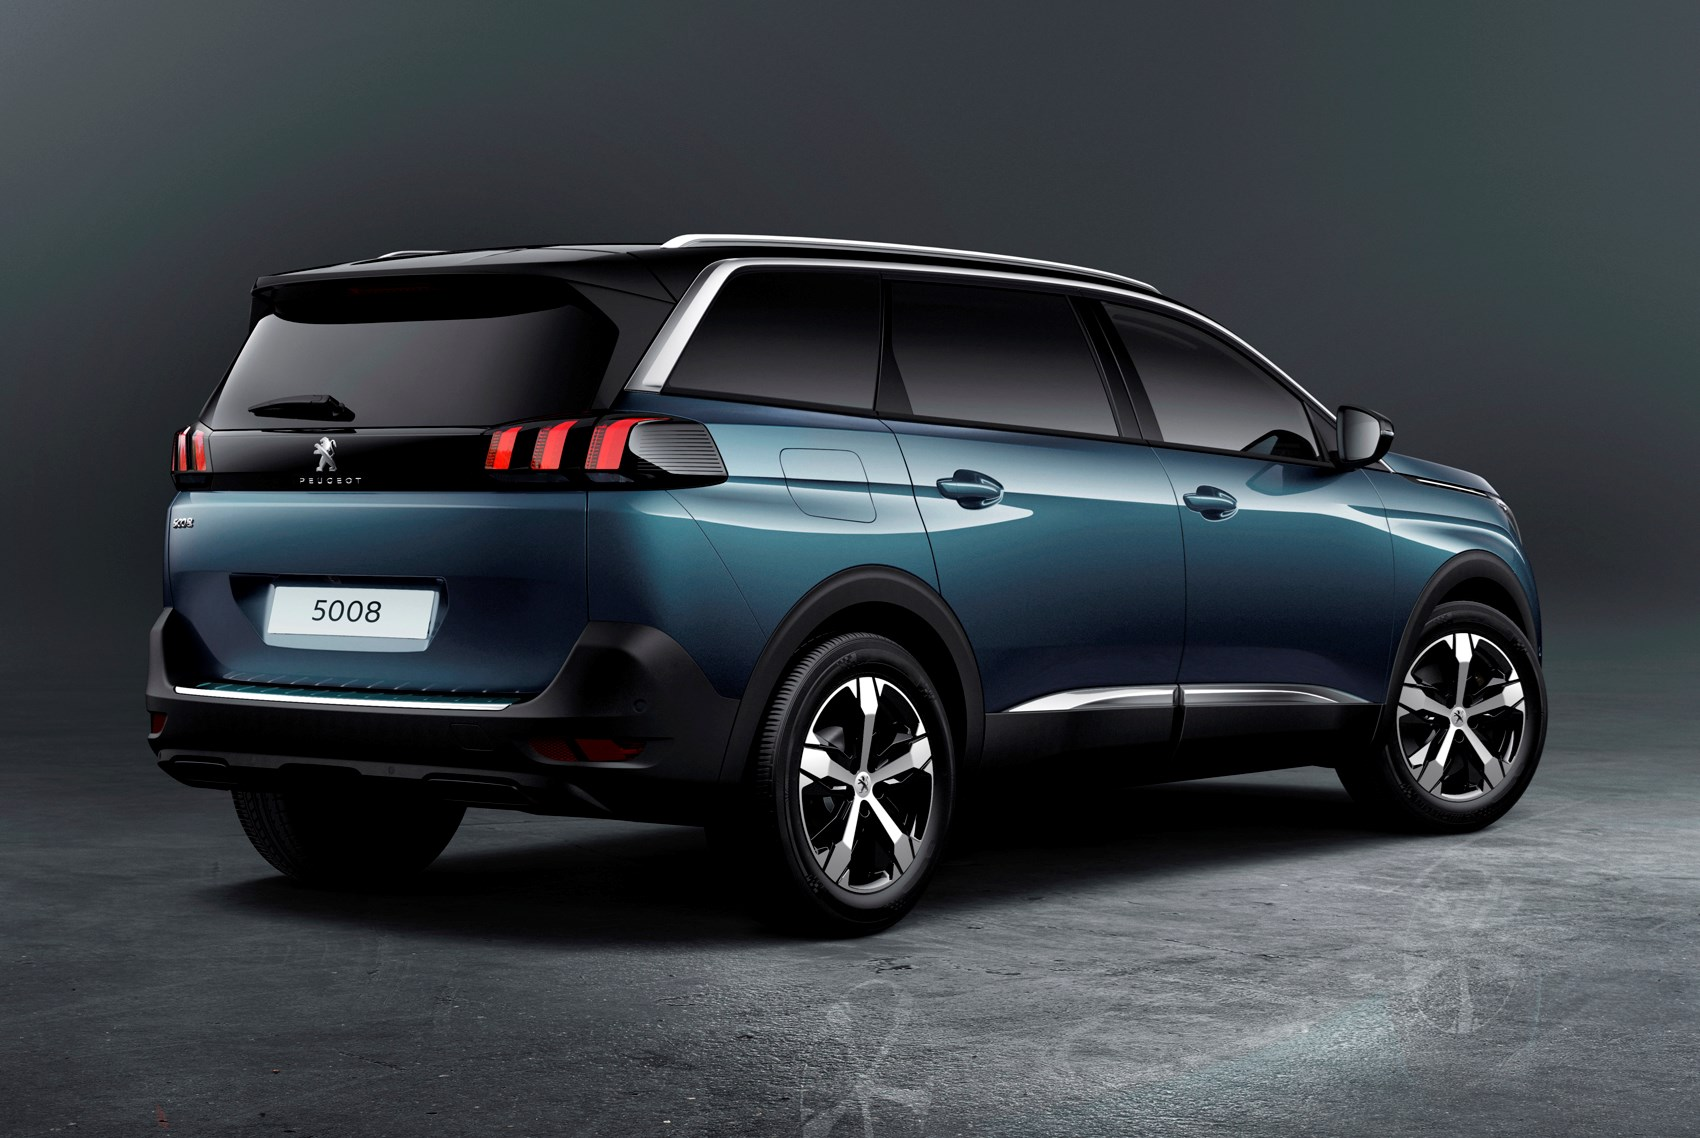 peugeot 5008 suv review features parkers. Black Bedroom Furniture Sets. Home Design Ideas